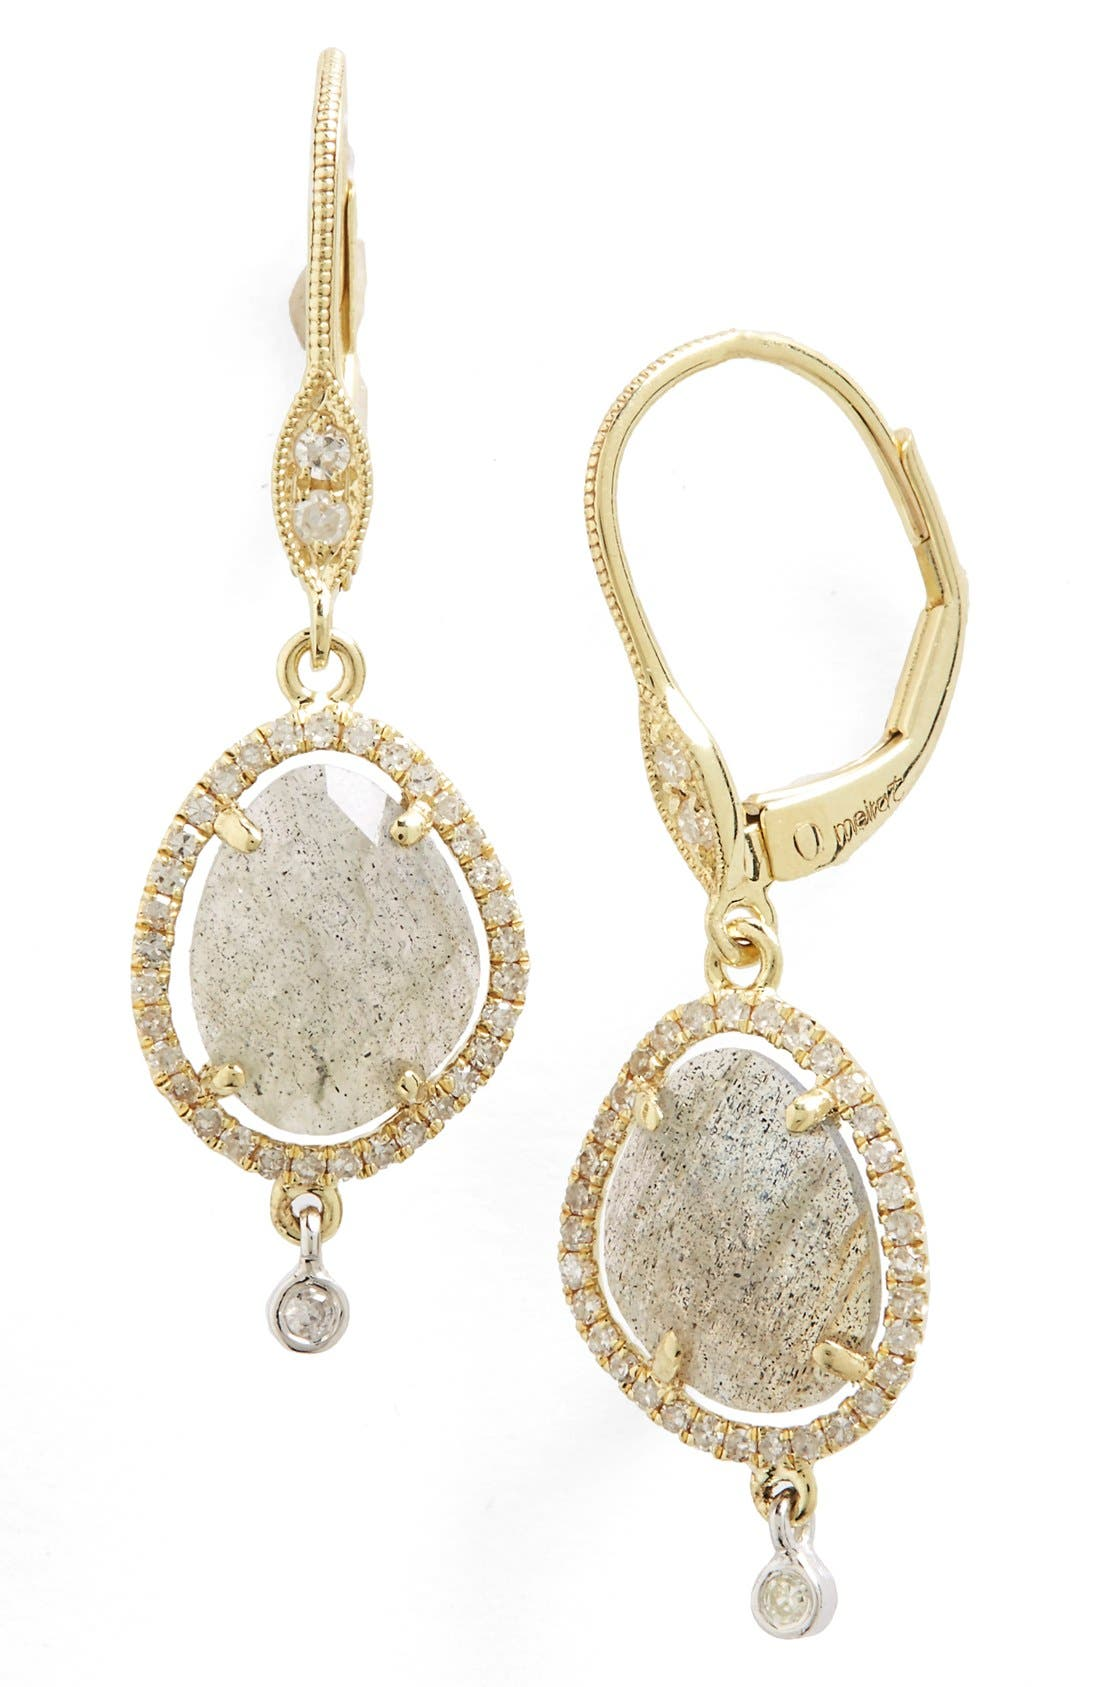 MEIRA T Diamond & Semiprecious Stone Drop Earrings